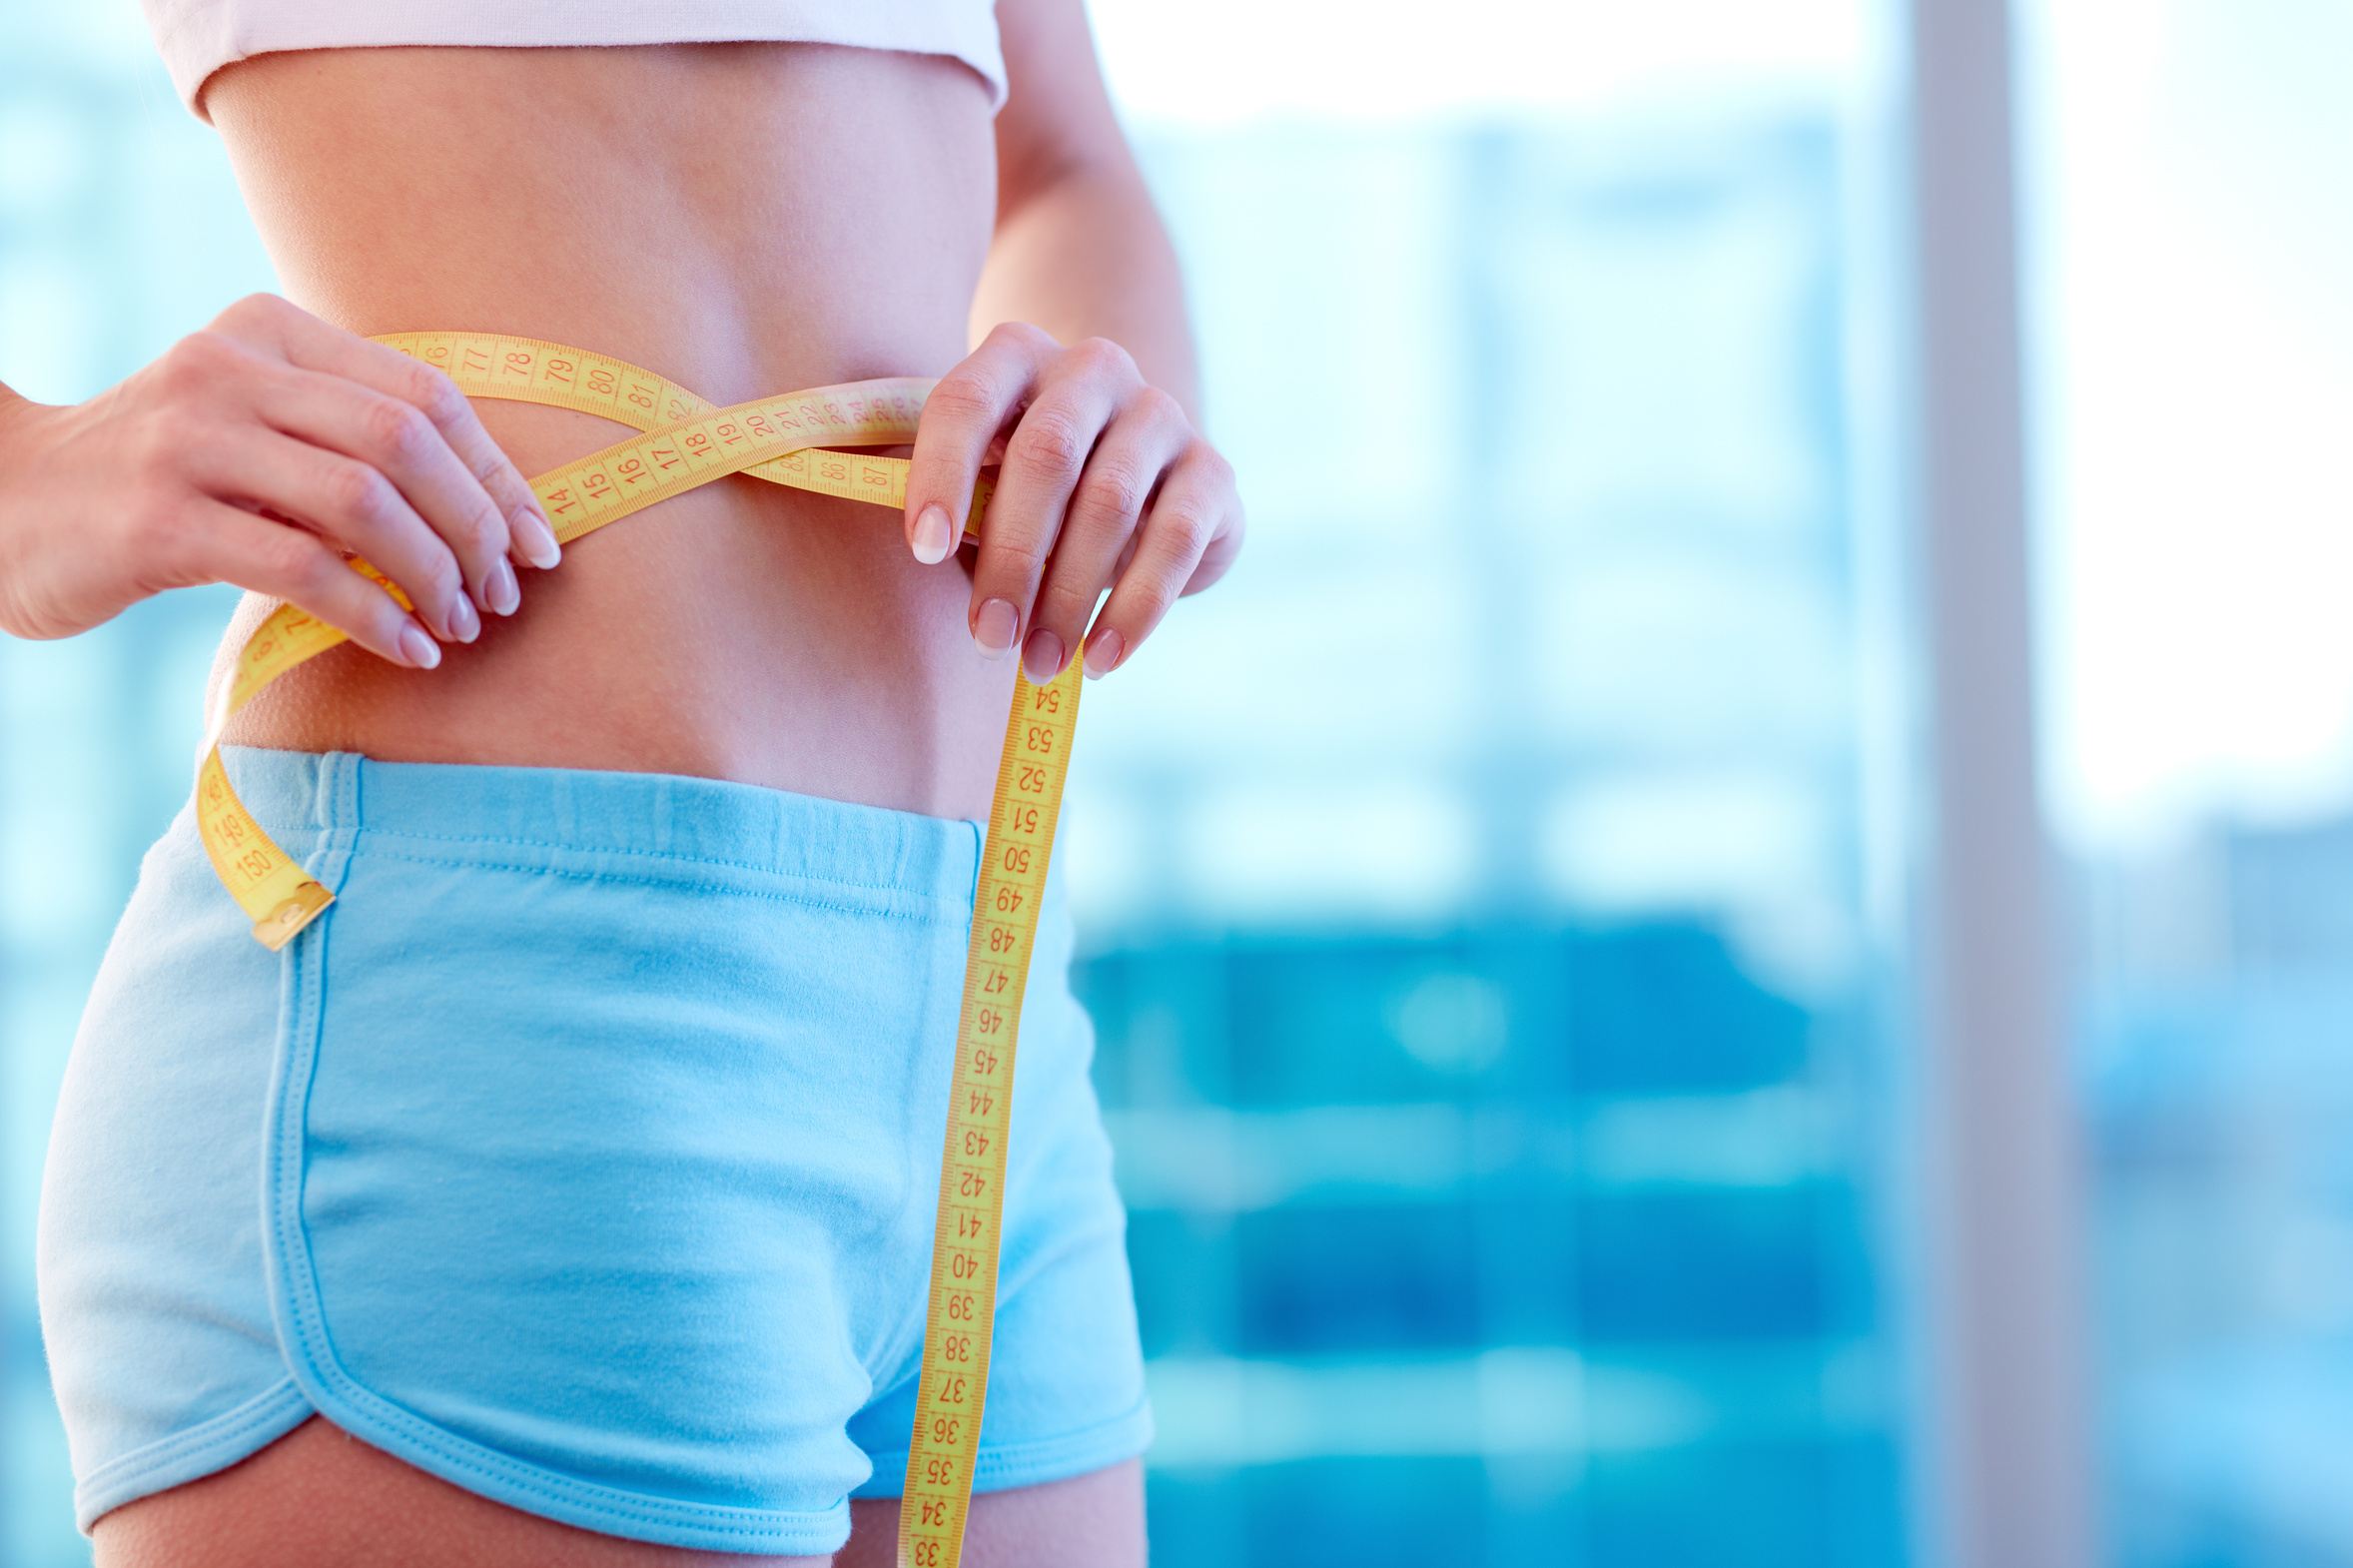 Lose it! Healthy weight loss